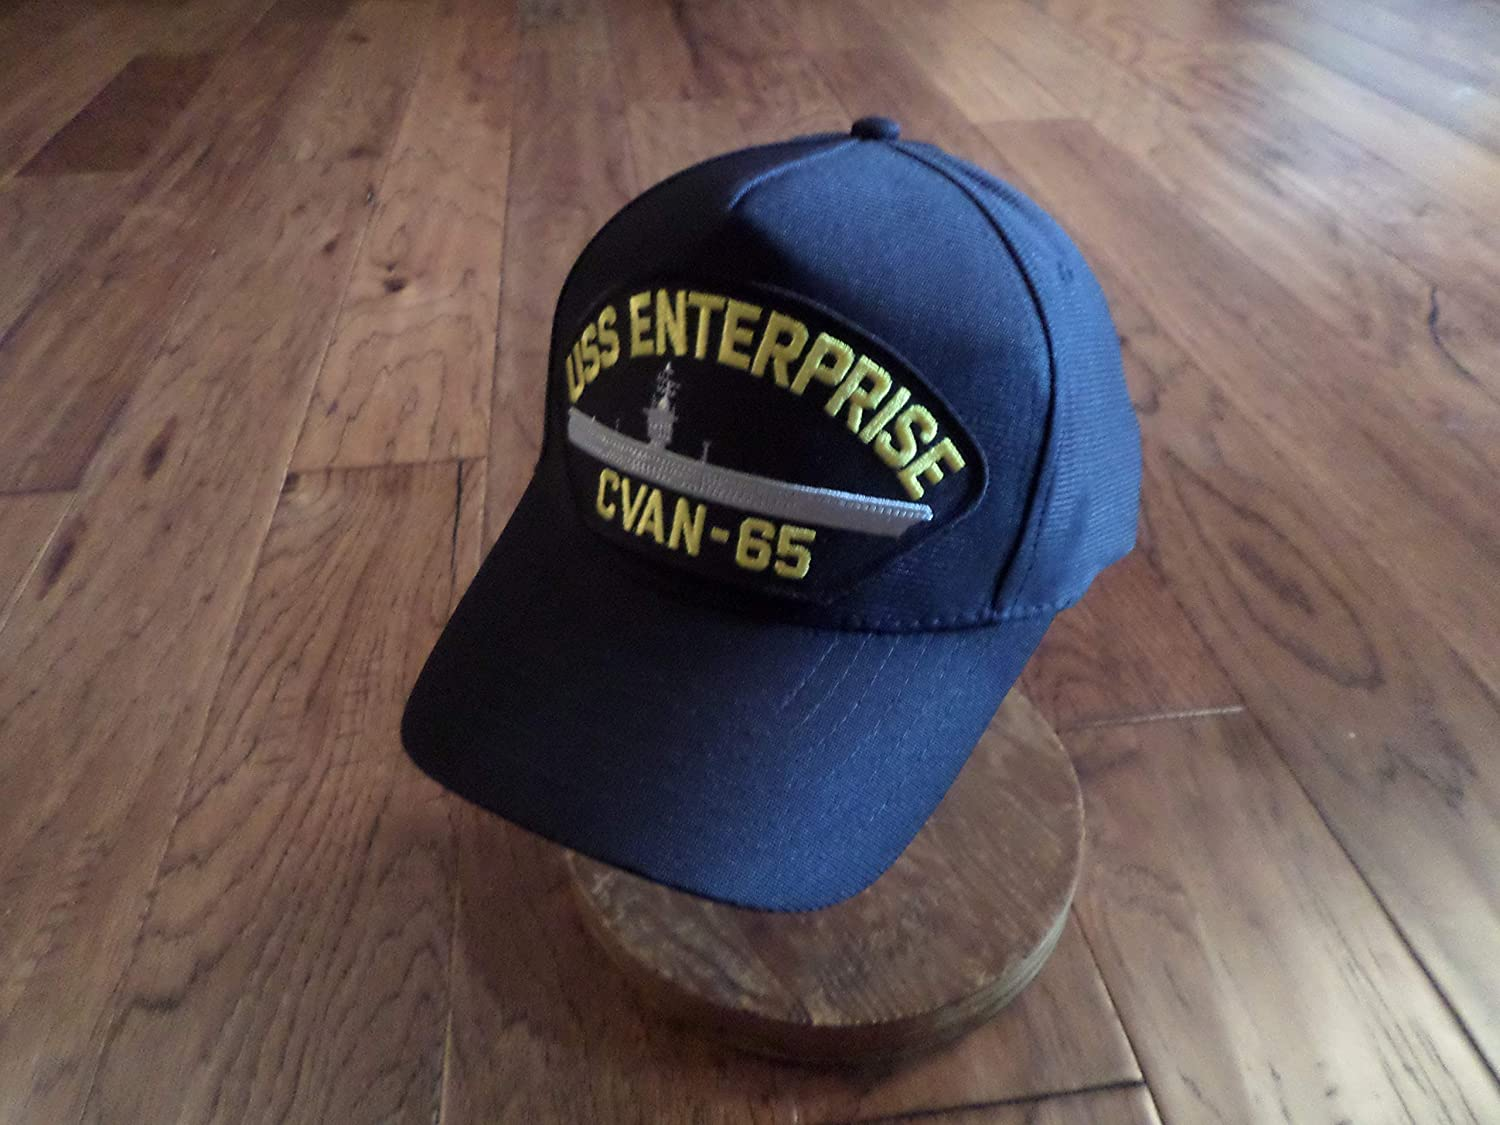 9a27038b339 Amazon.com  EAGLE CREST USS Enterprise CVAN-65 Navy Ship Hat U.S Military  Official Ball Cap U.S.A Made  Clothing